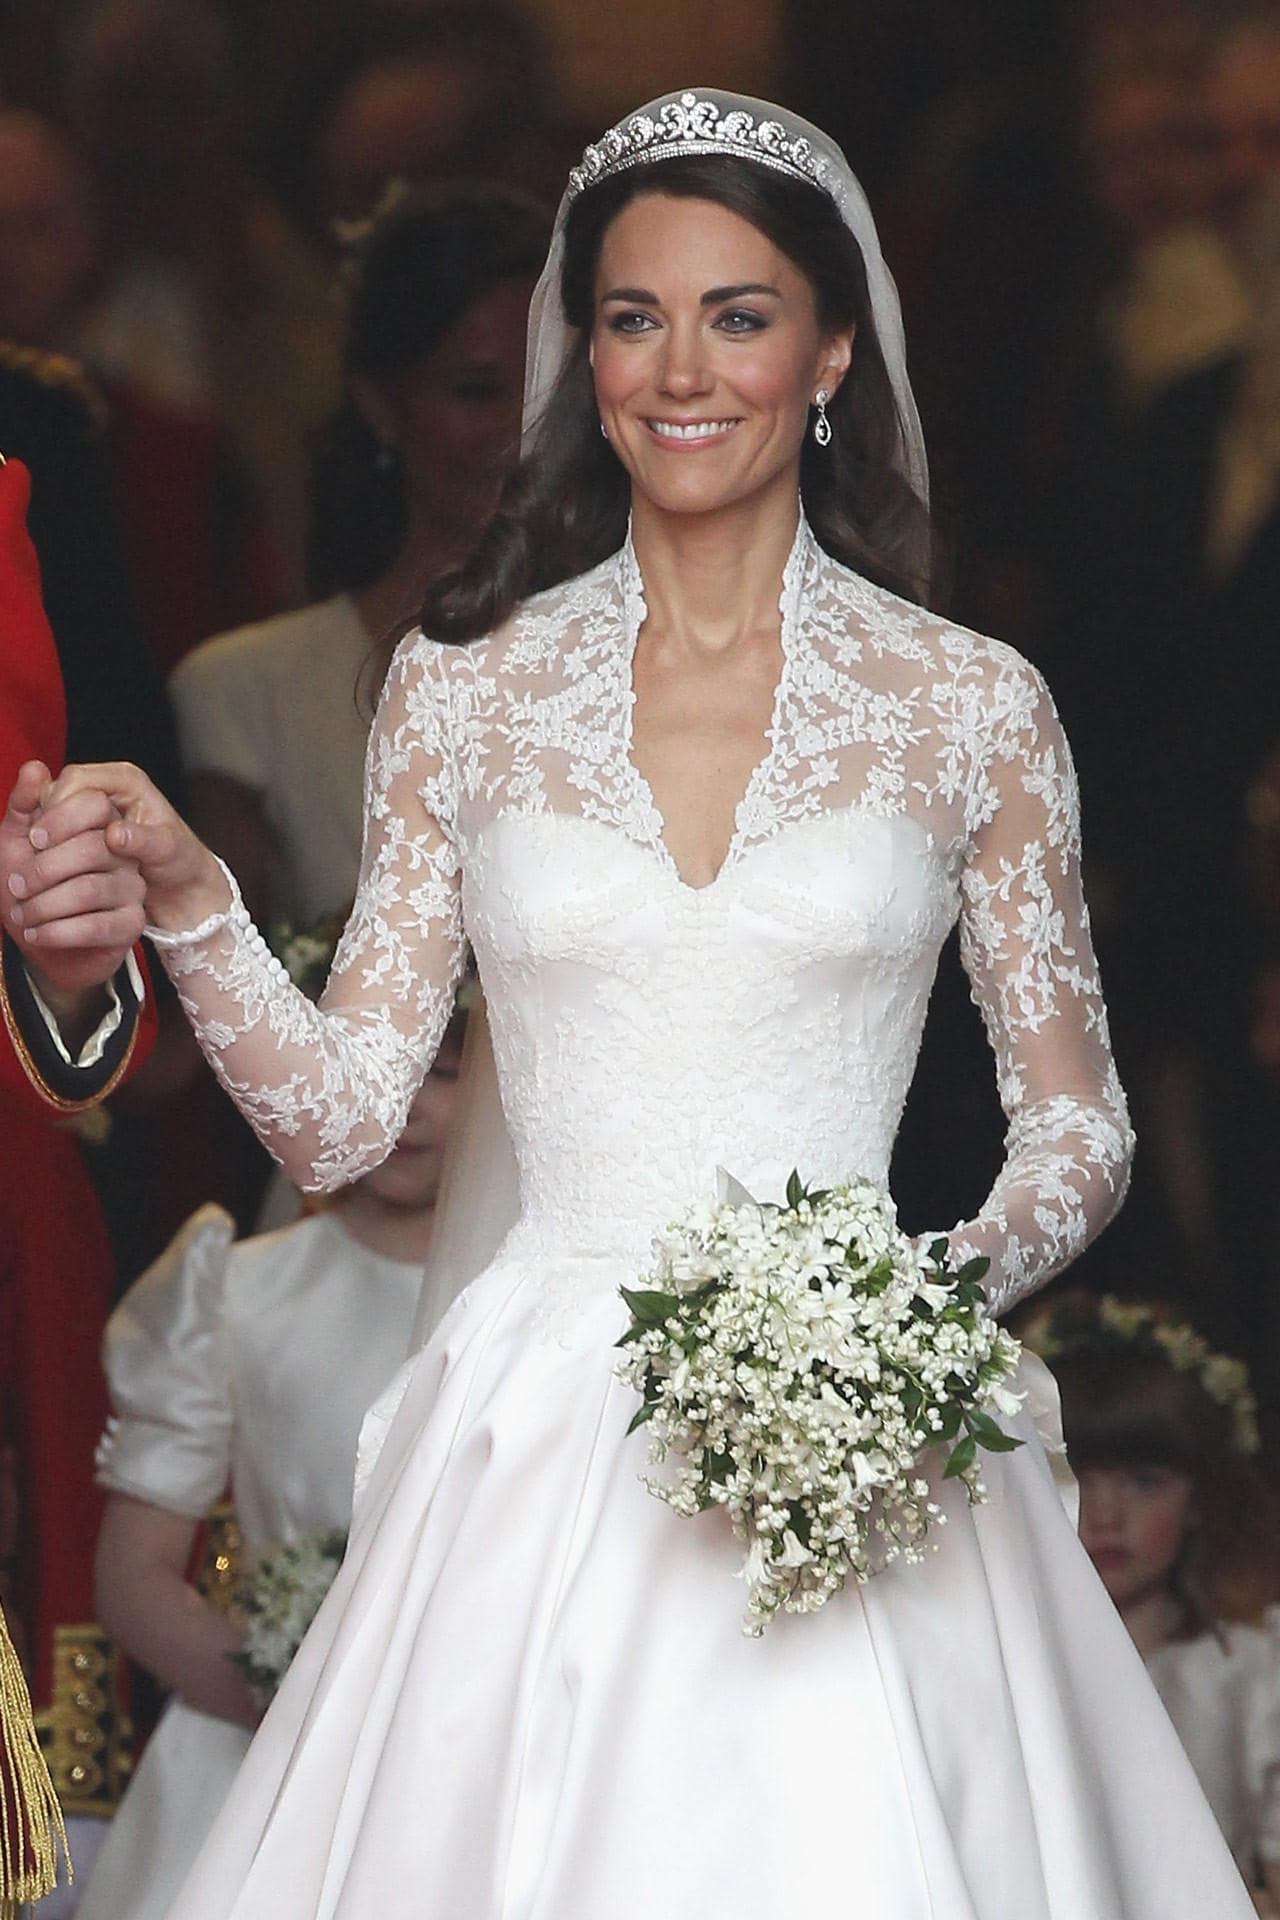 10 Most Beautiful Celebrity Mom Wedding Dresses